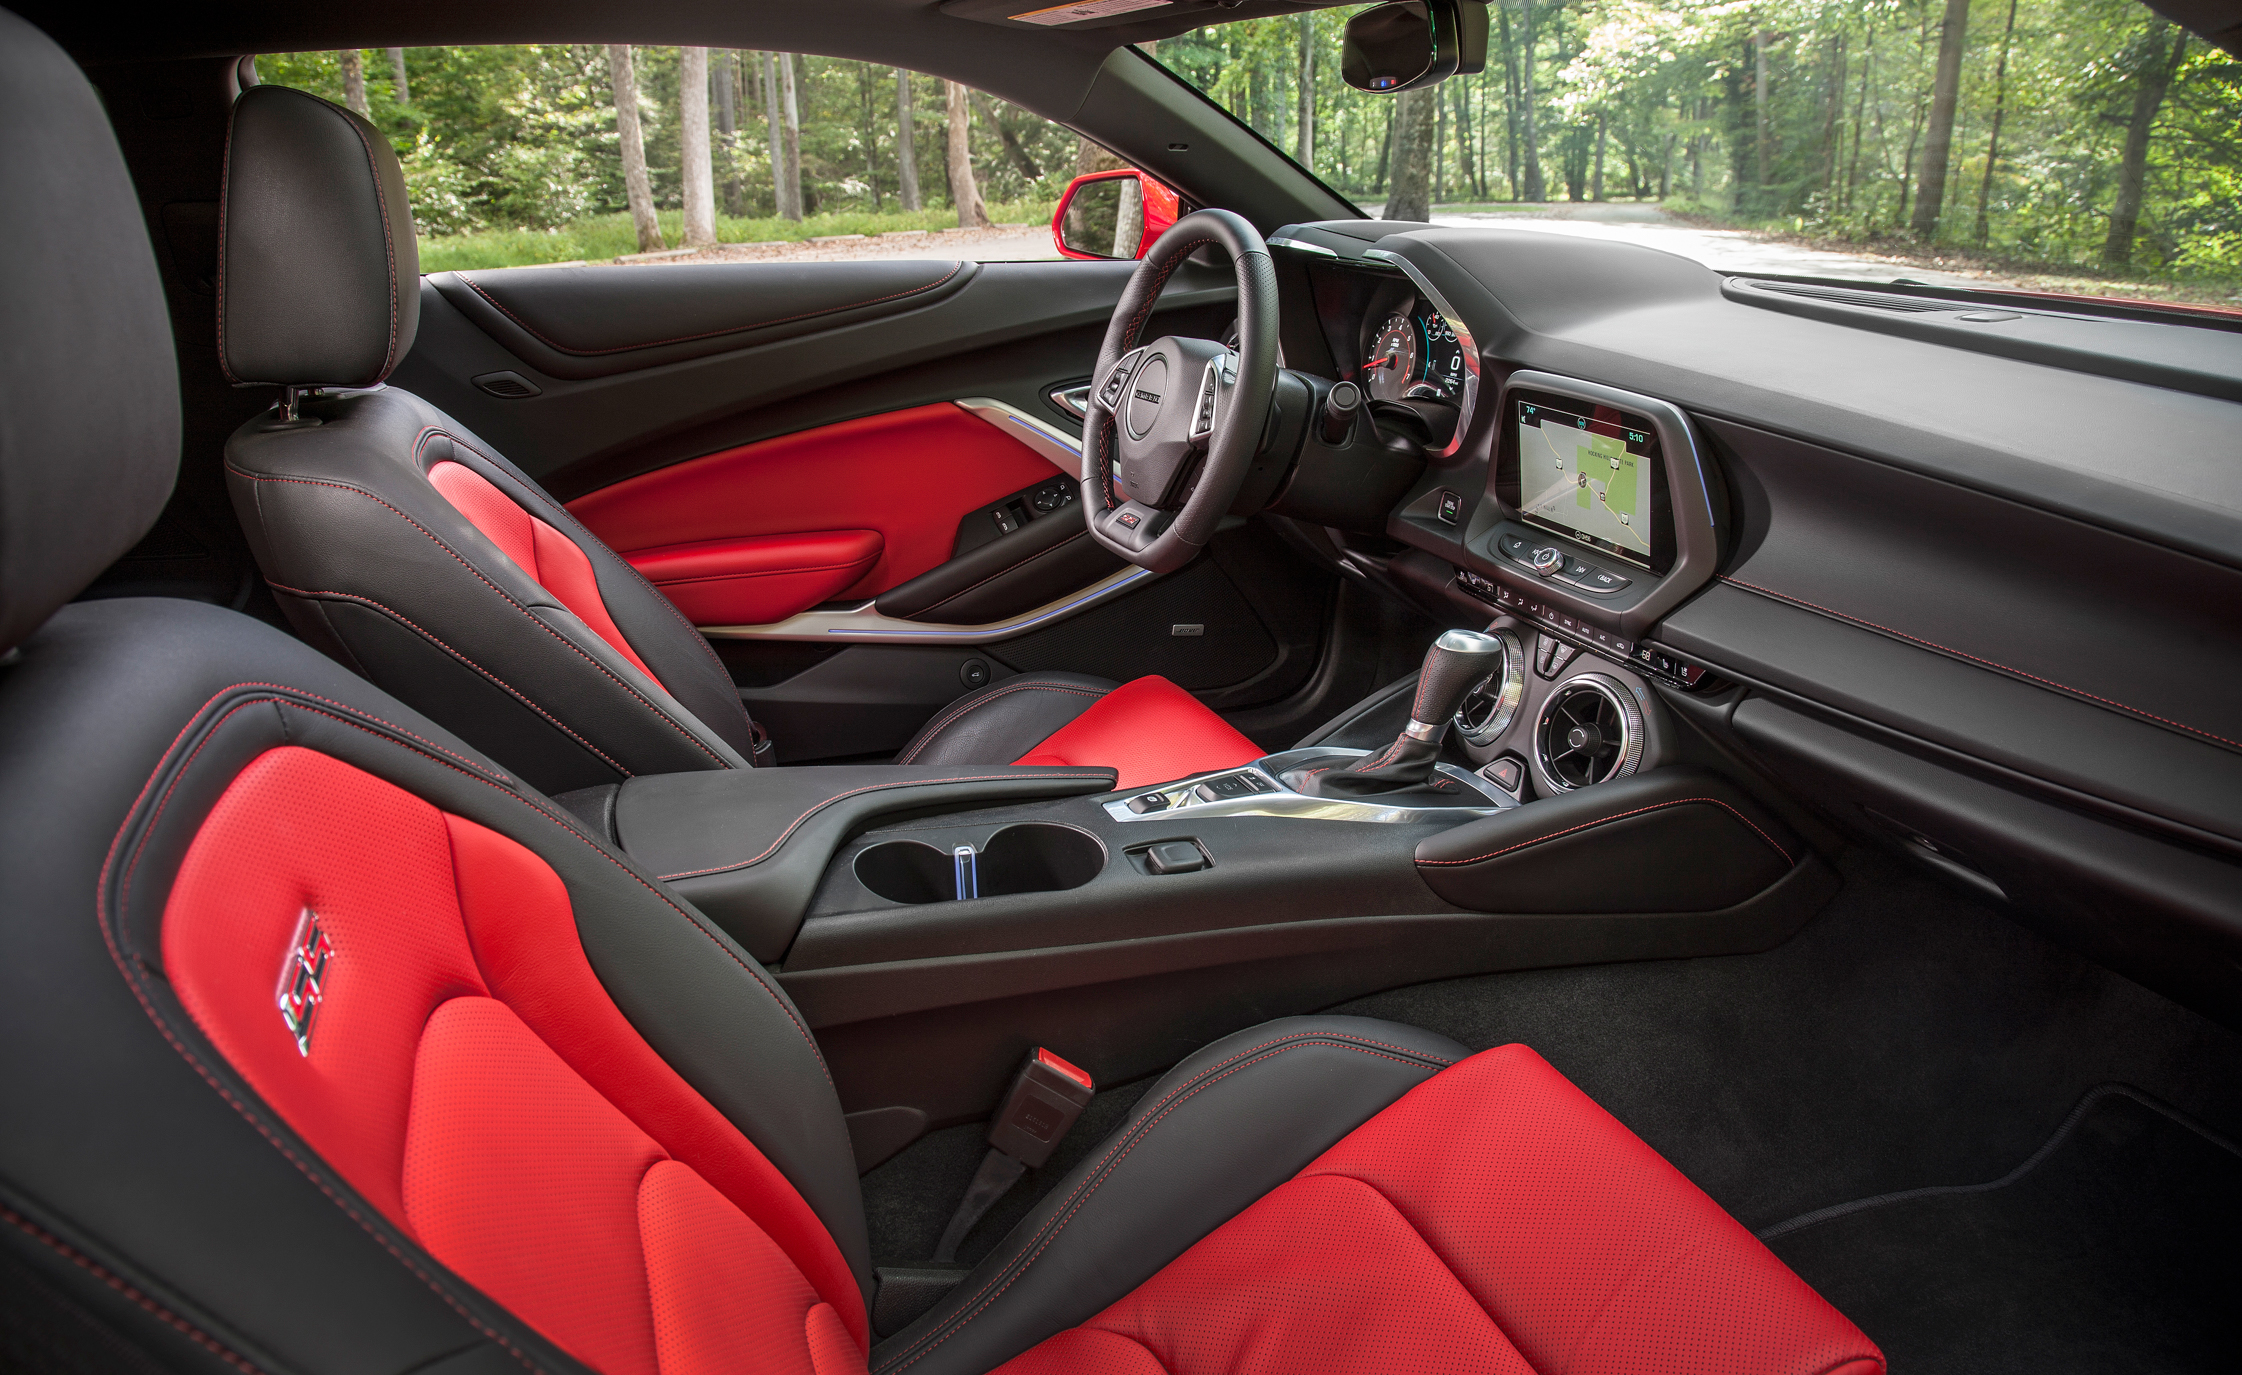 2016 Chevrolet Camaro SS Front Seats Interior Preview